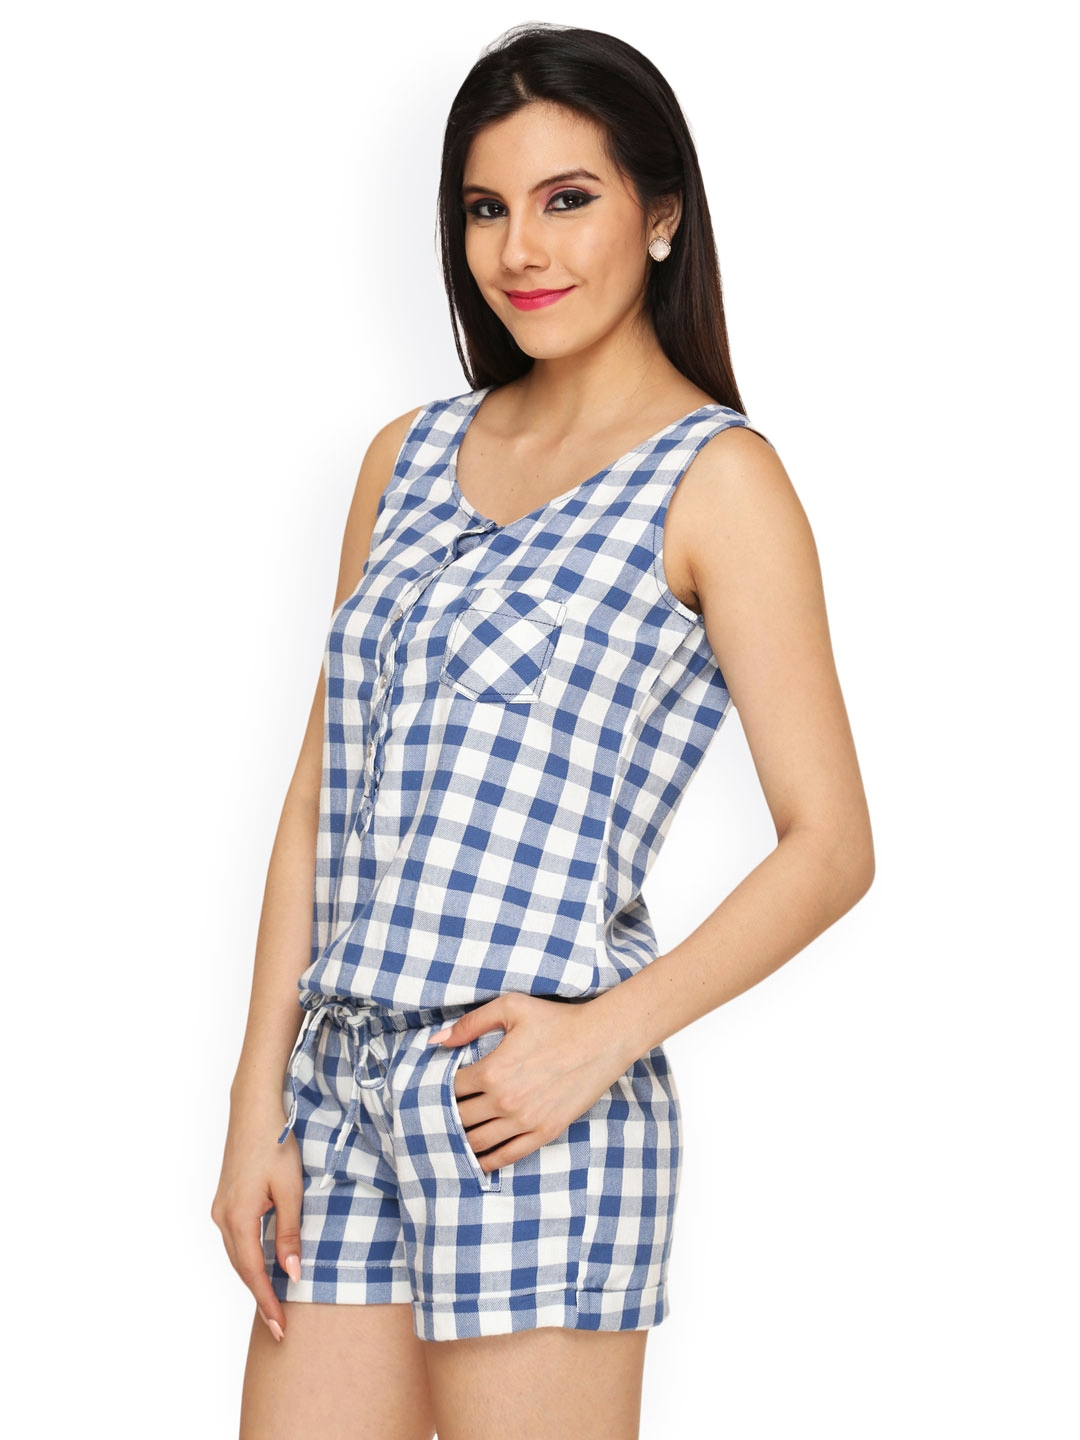 If there is one trend that remains unshakably strong this season, it's menswear-inspired checked tailoring. Our checked playsuit features long sleeves with elastic cuffs, alluring shoulder cutouts with frill detail and two side slant pockets.